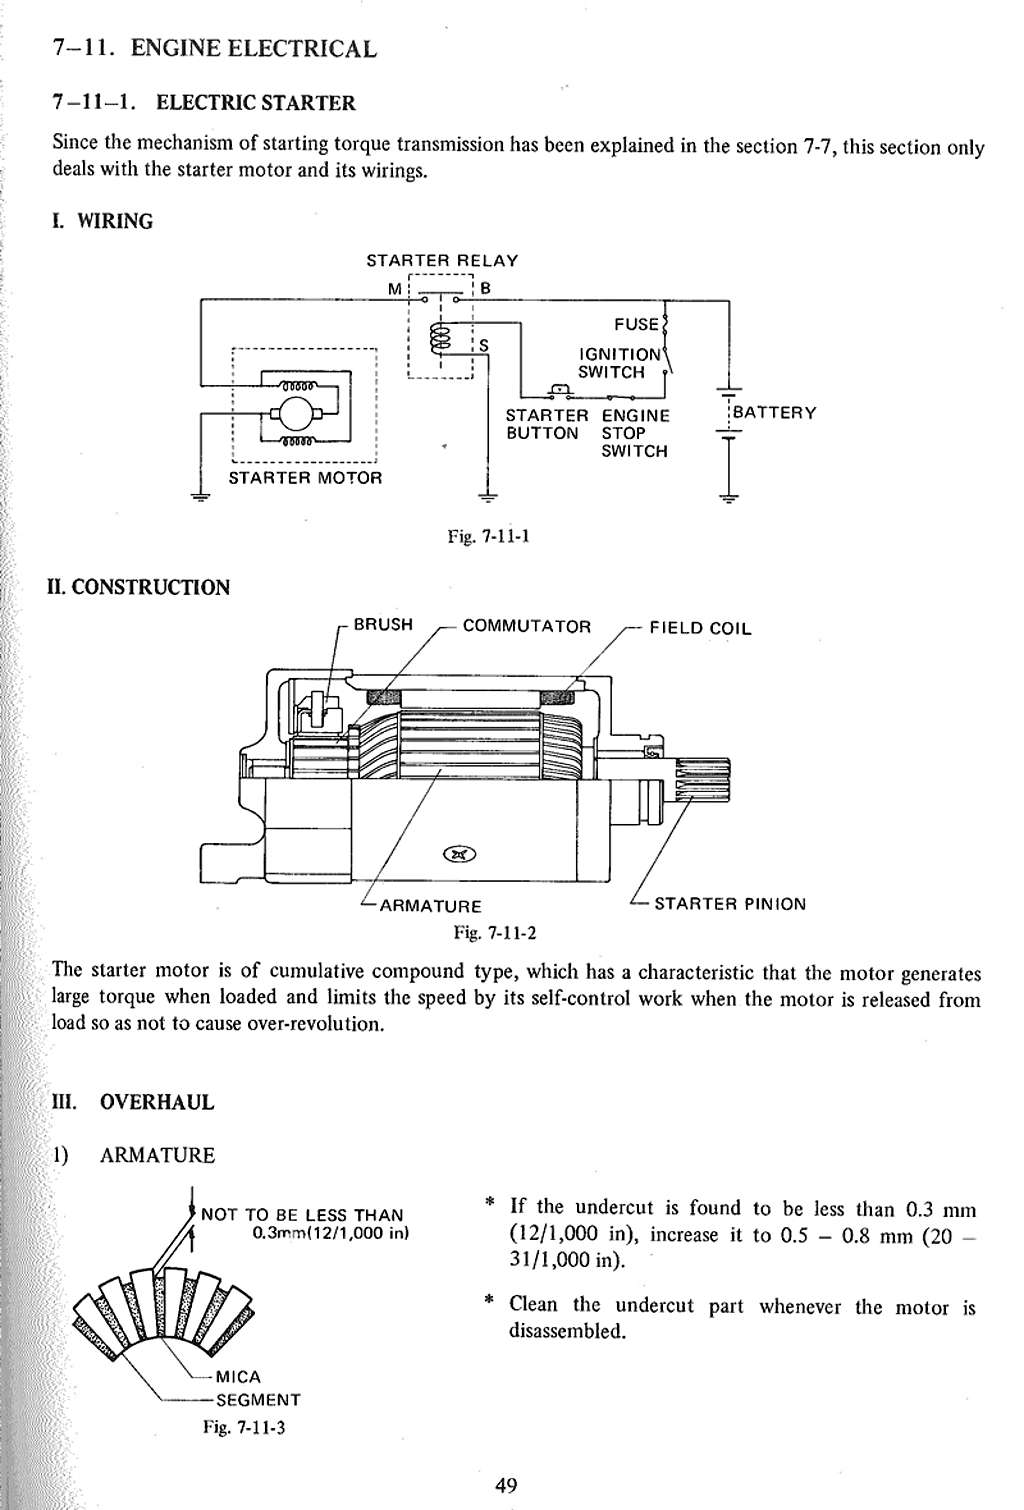 hight resolution of transmission air cleaner engine electrical